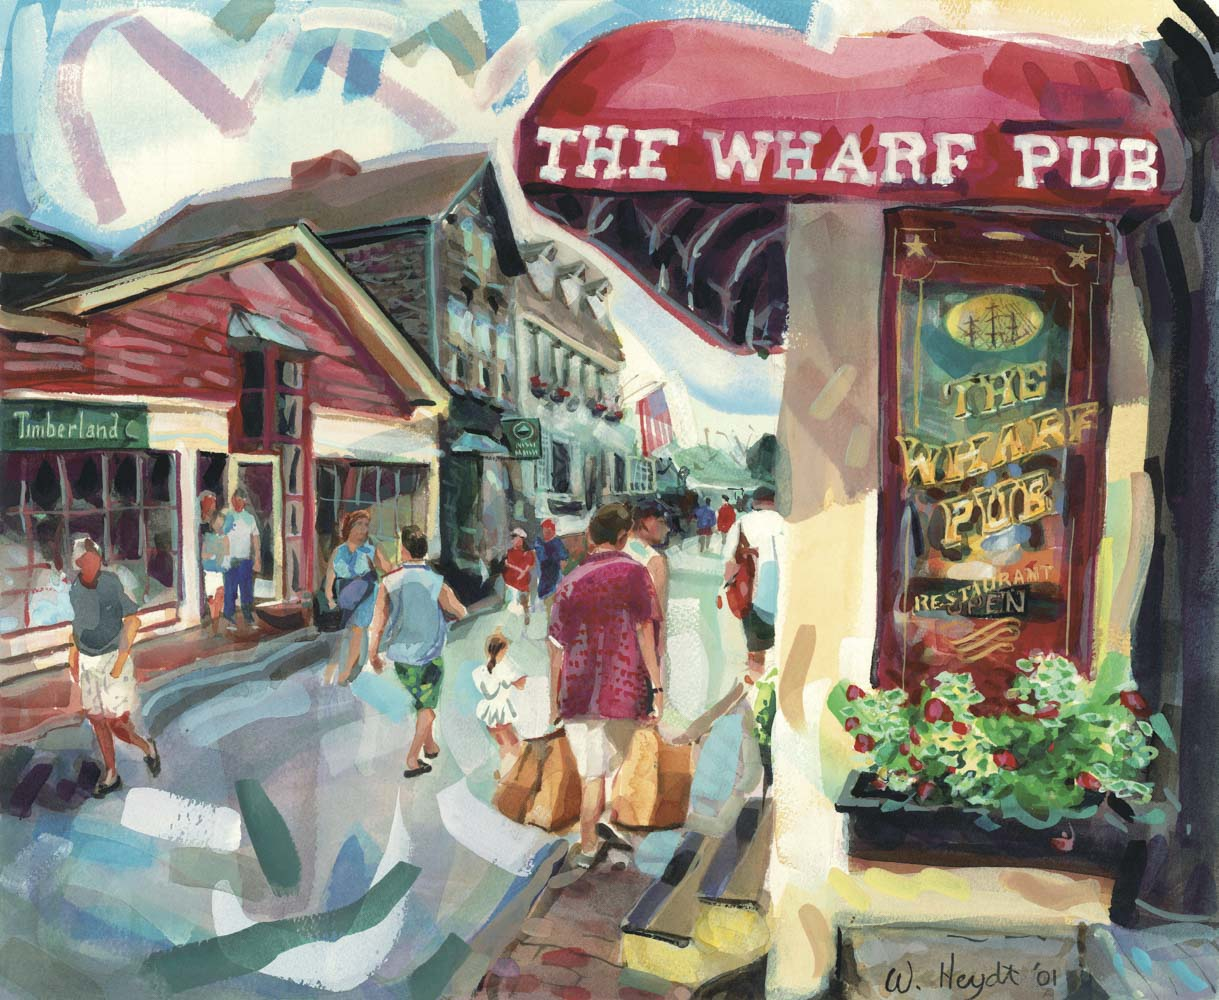 Fun shops and good restuarants draw a summer crowd to Bannisters Wharf, Newport